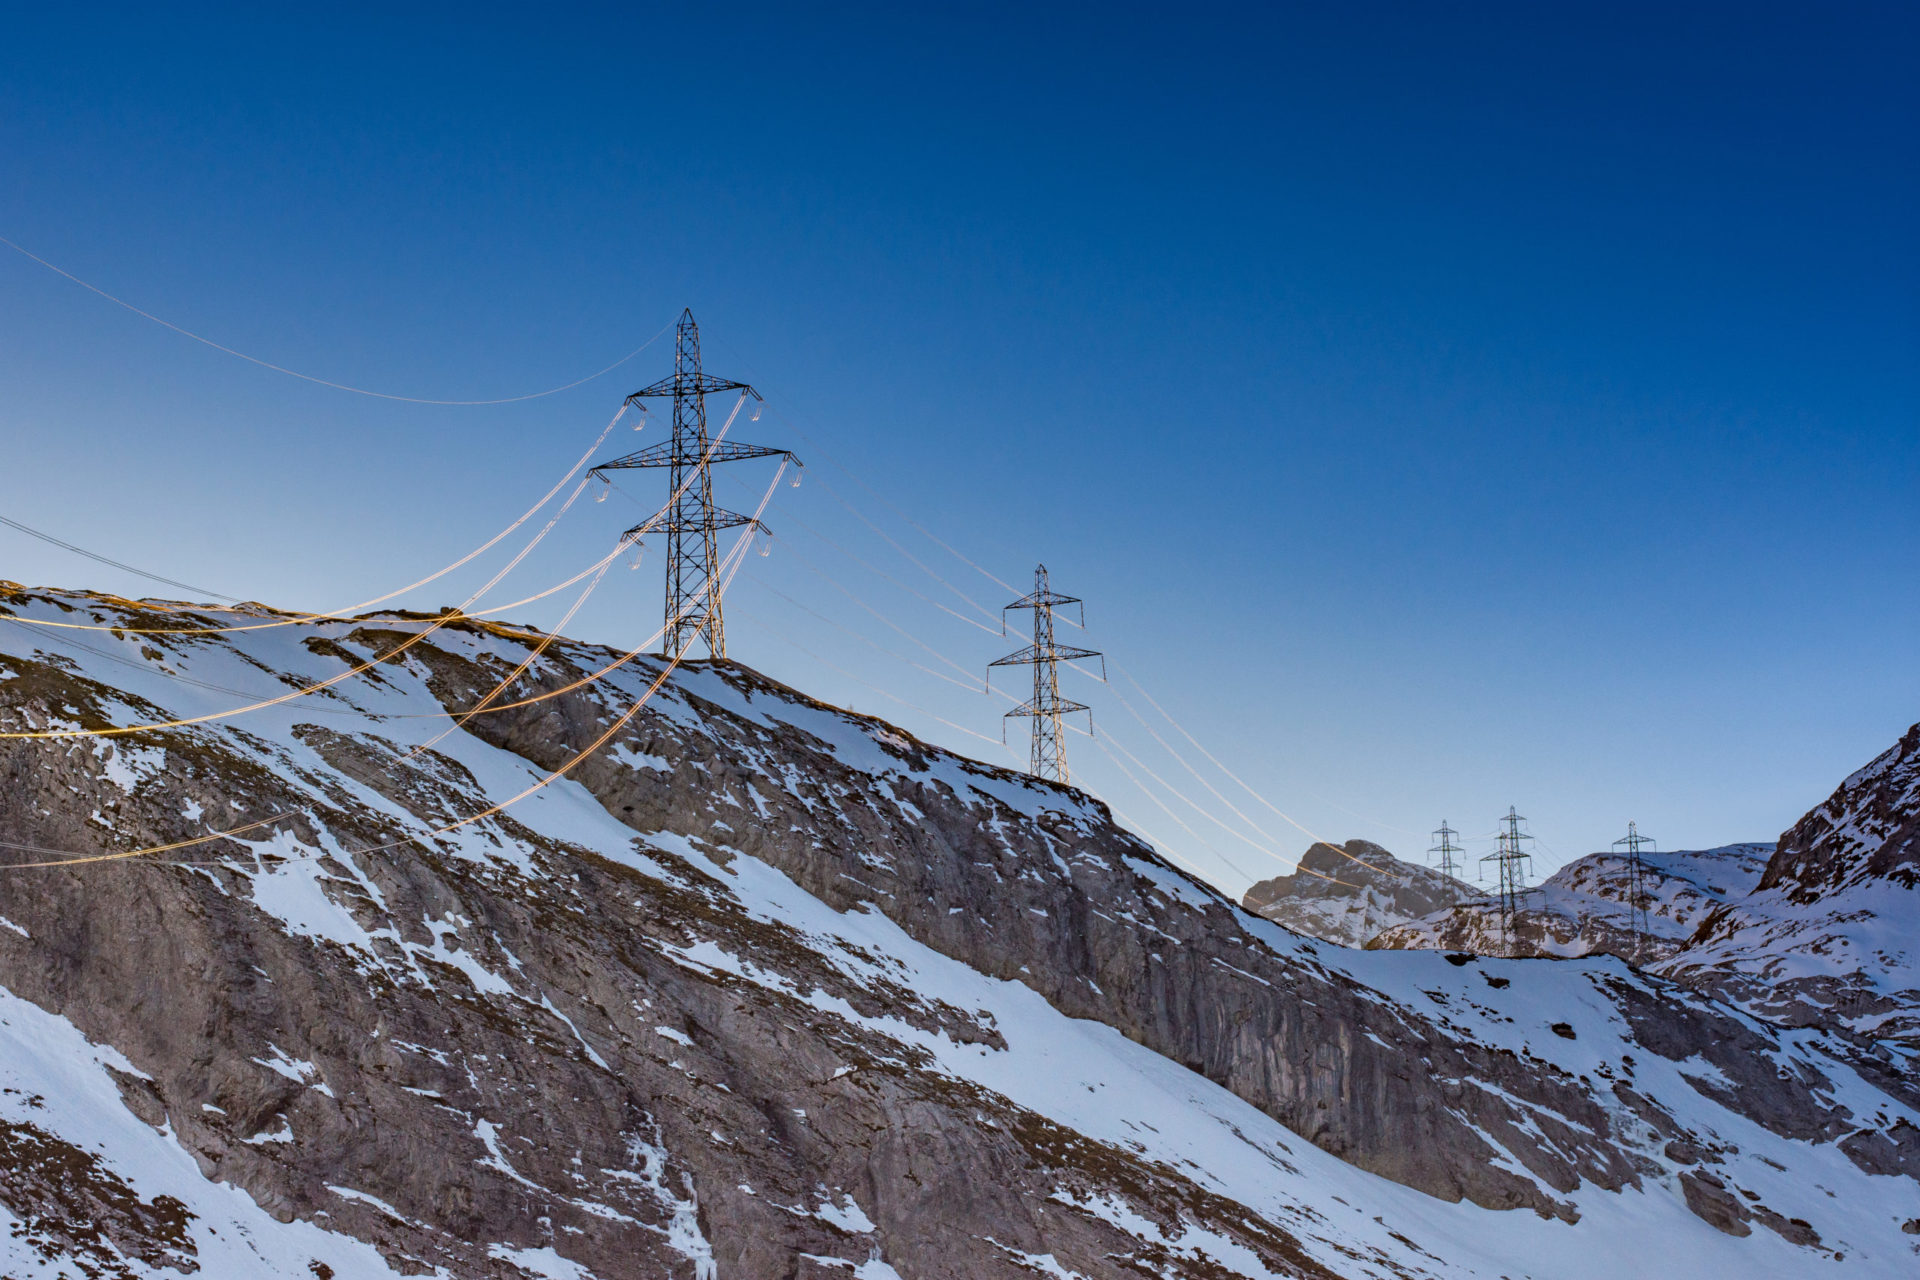 Swissgrid's high voltage system was upgraded with the investment support of EIP.